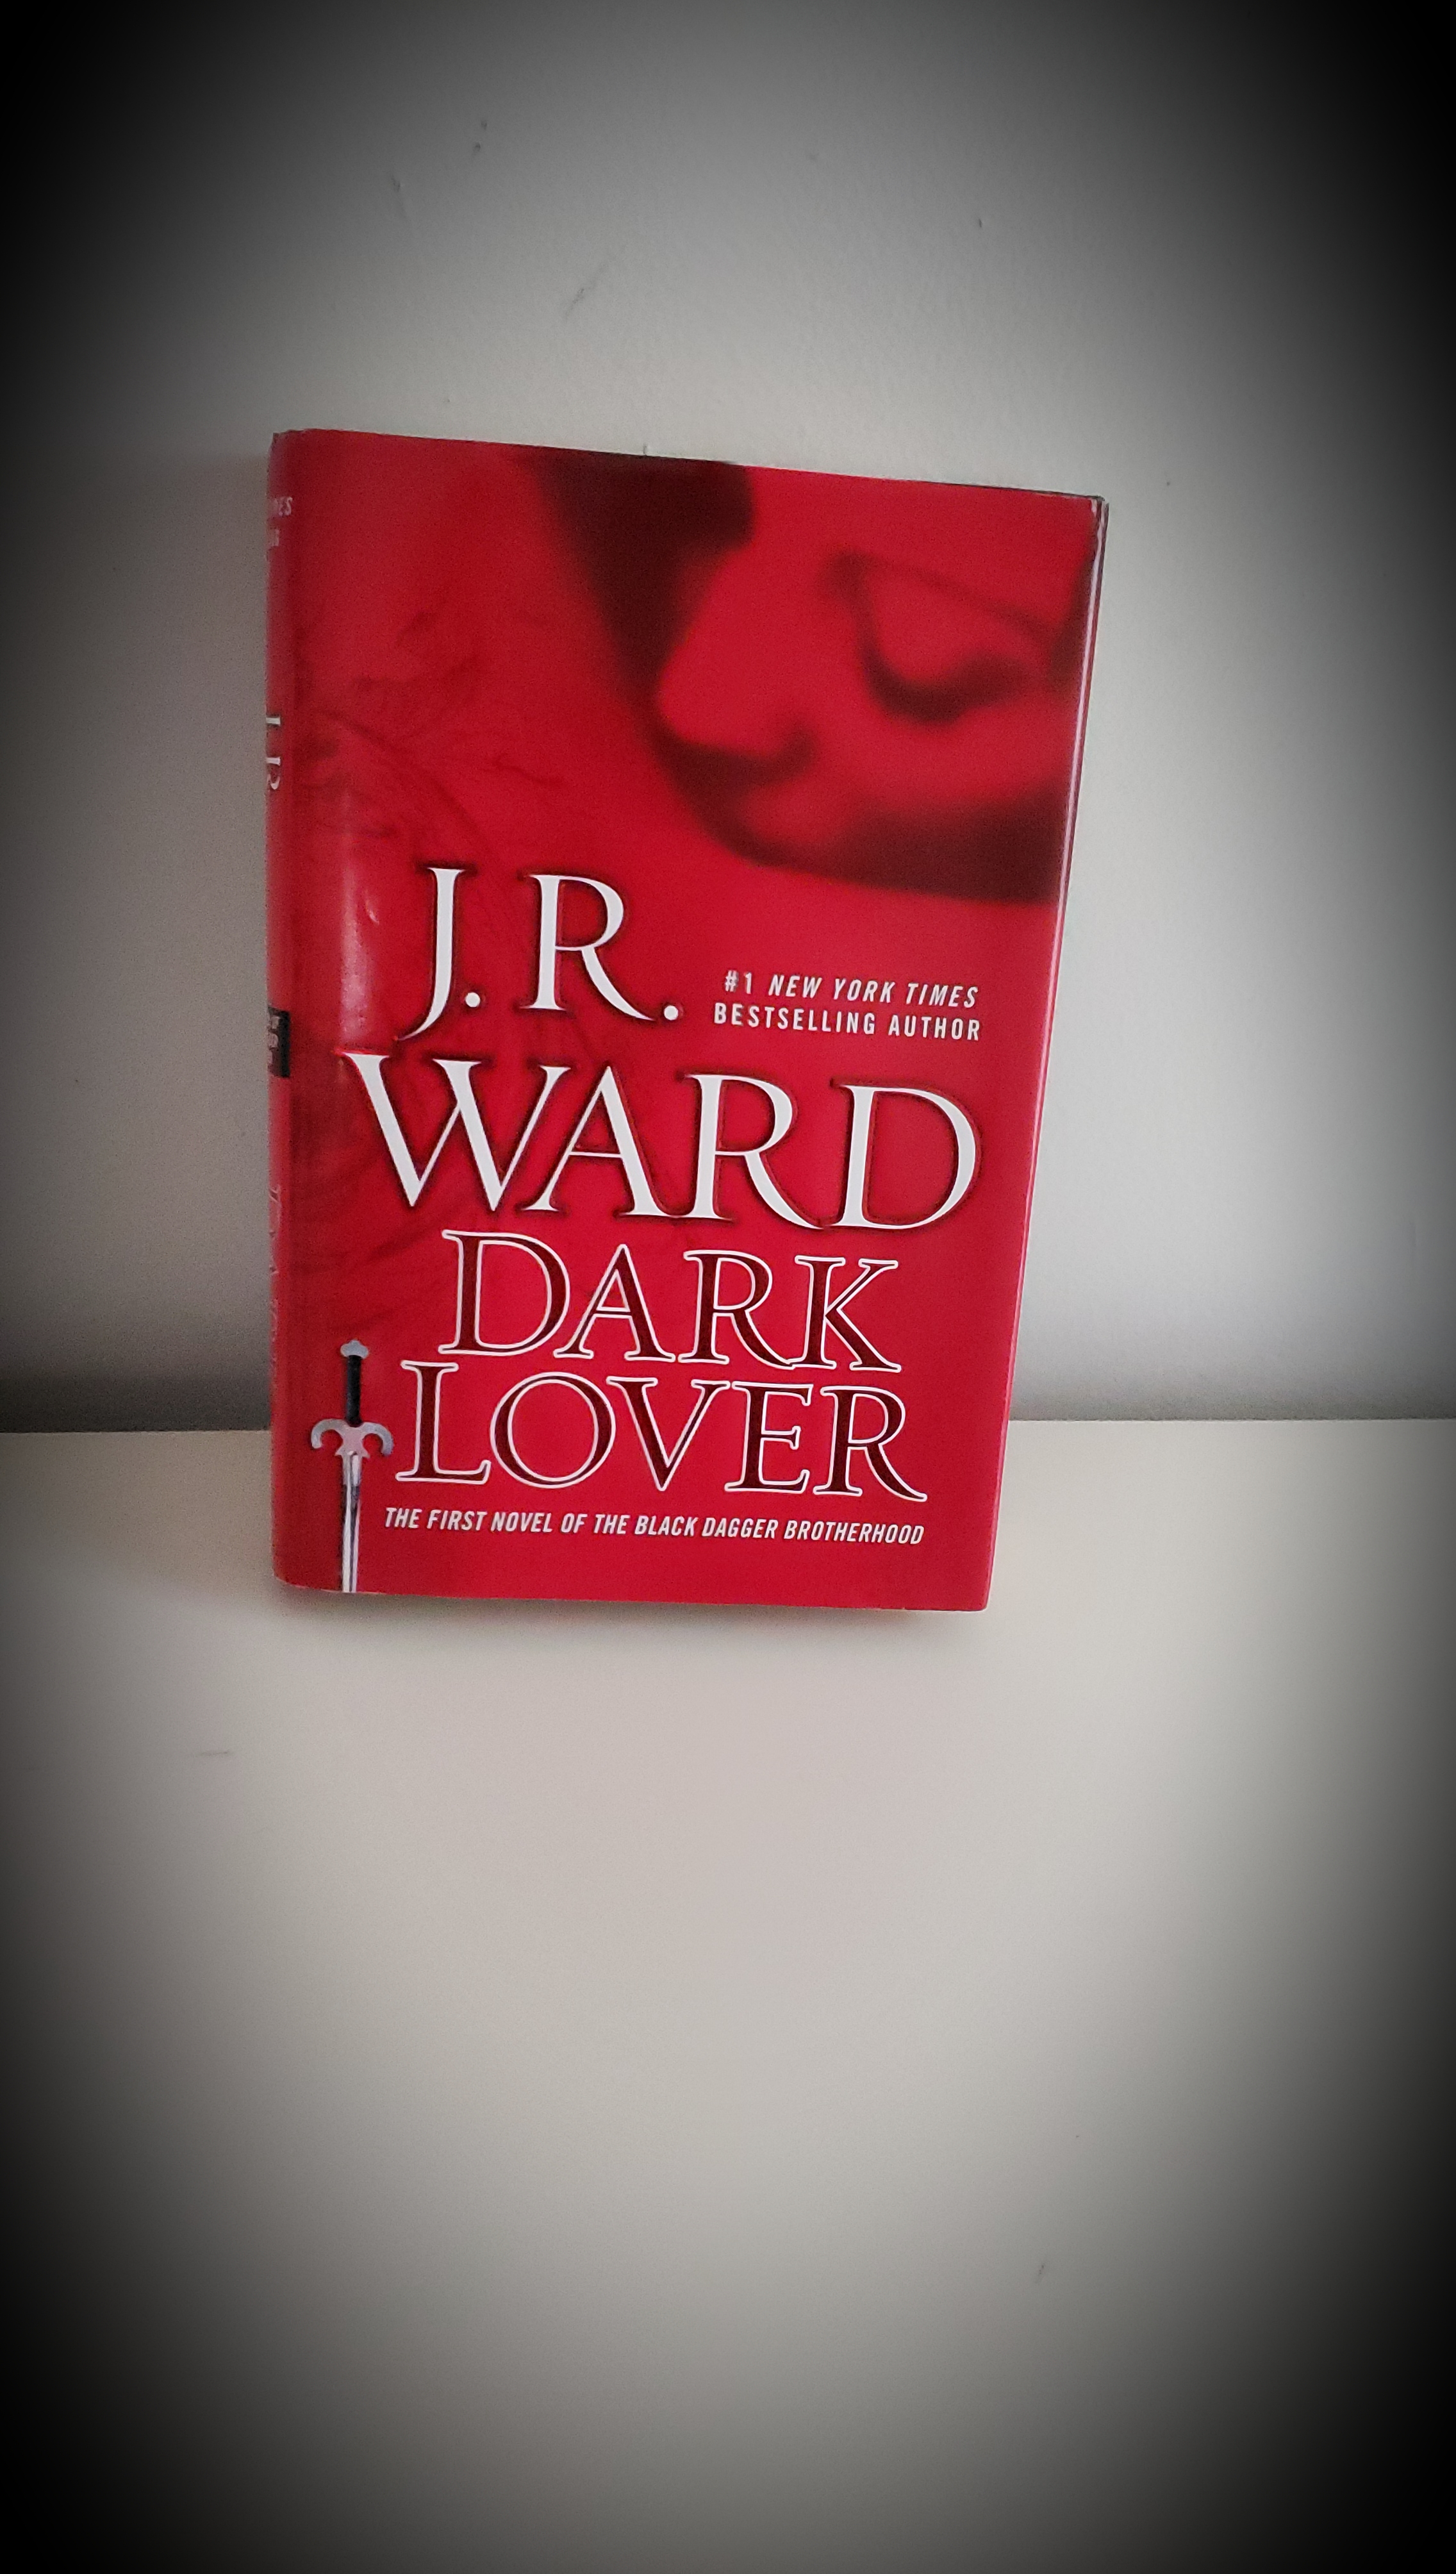 J.R. Ward Dark Lover